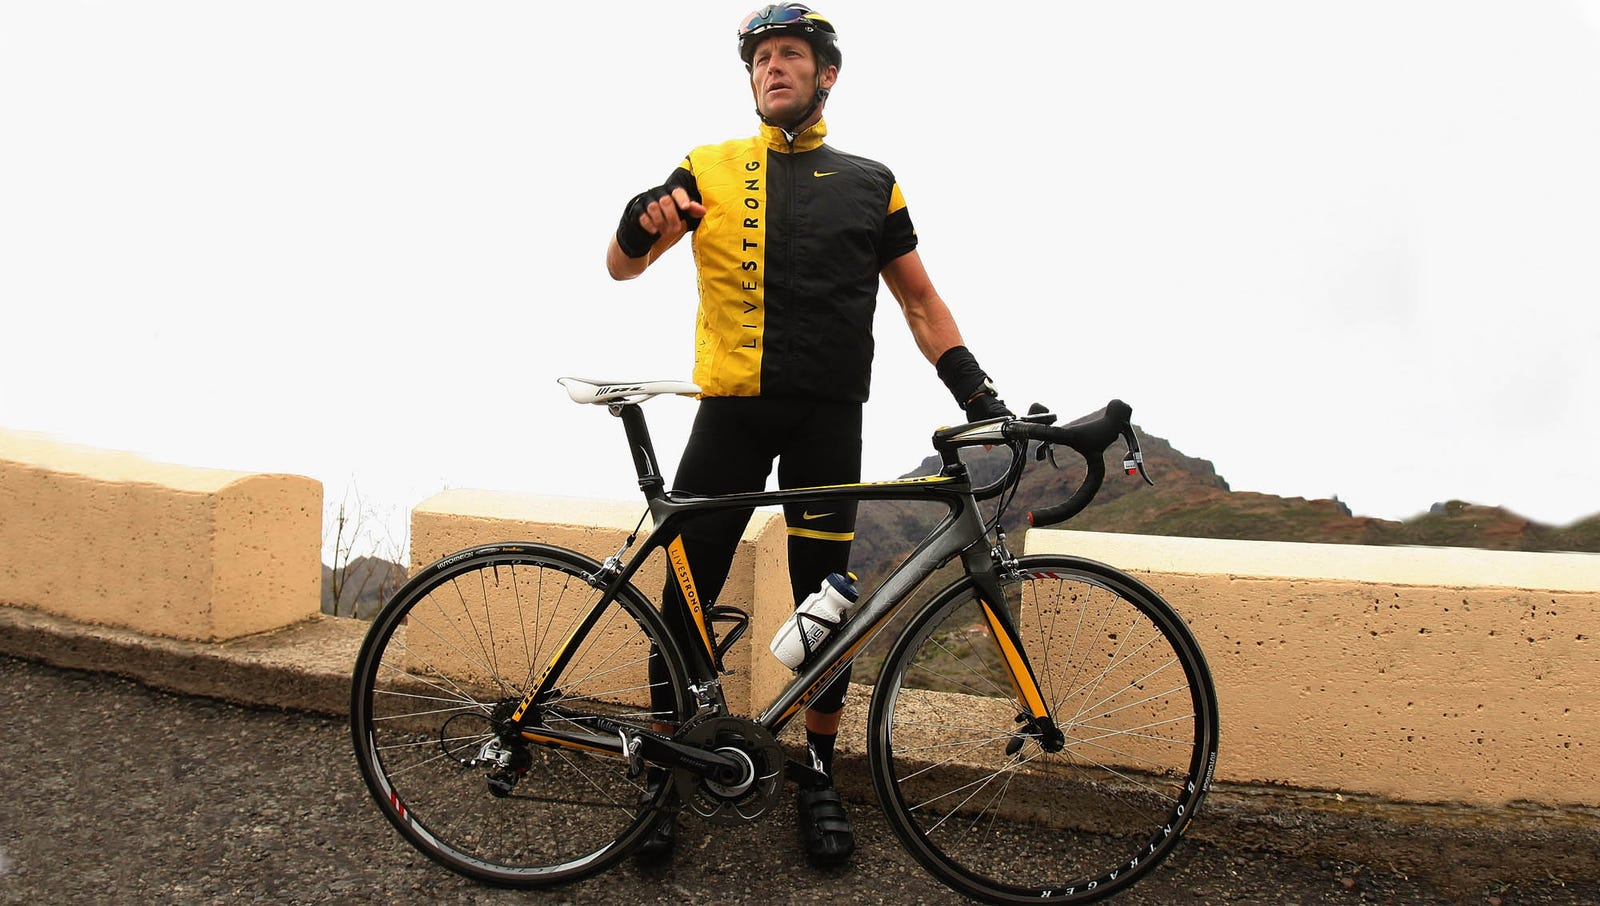 Lance Armstrong's Bike: 'It Was Me'